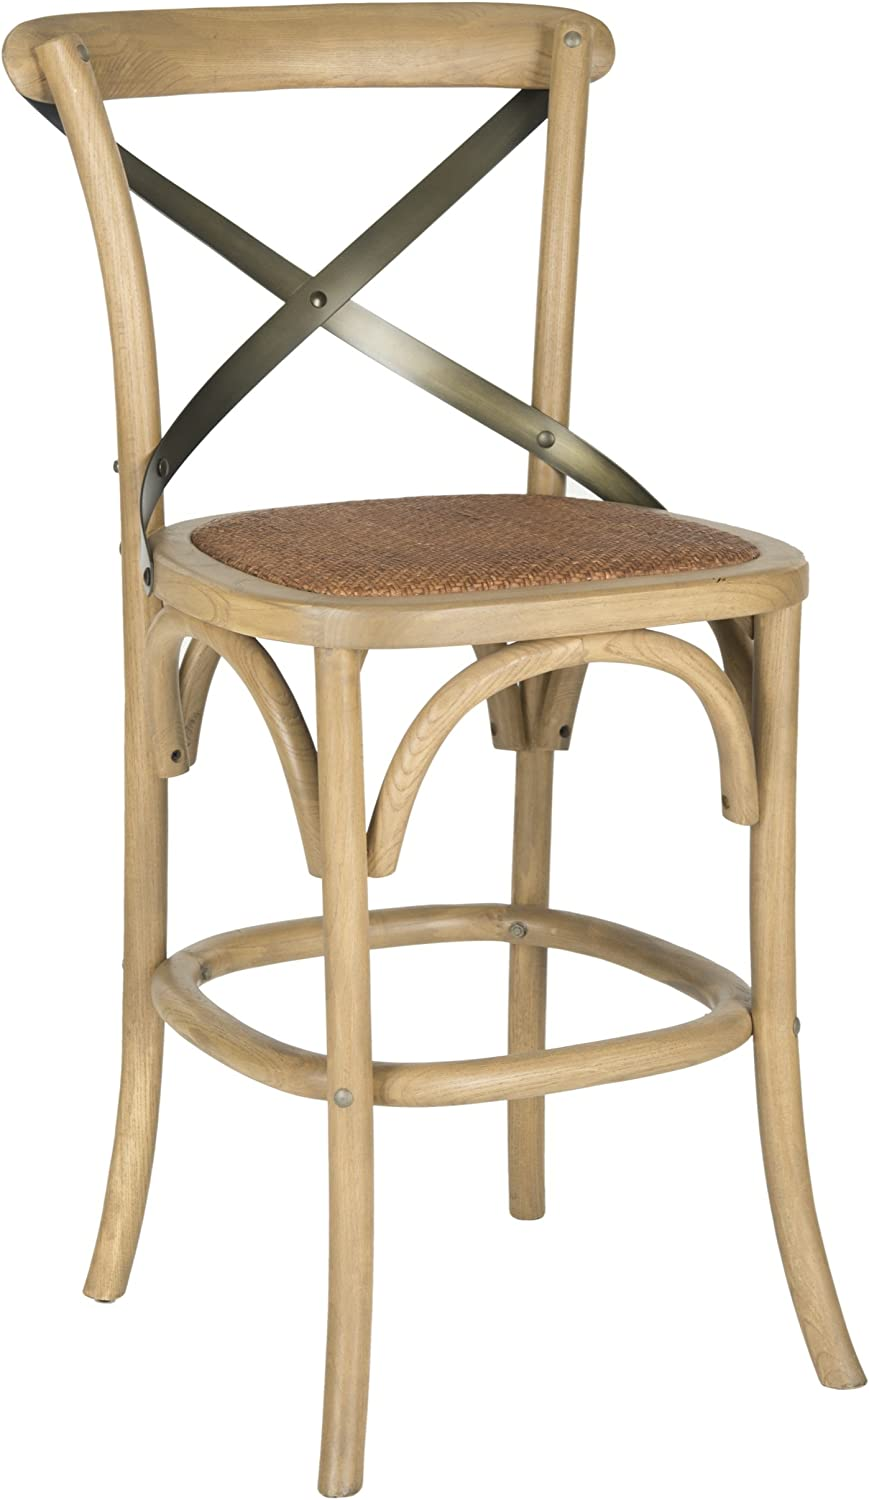 Safavieh American Homes Collection Eleanor Weathered Oak 24.4- Inch Counter Stool